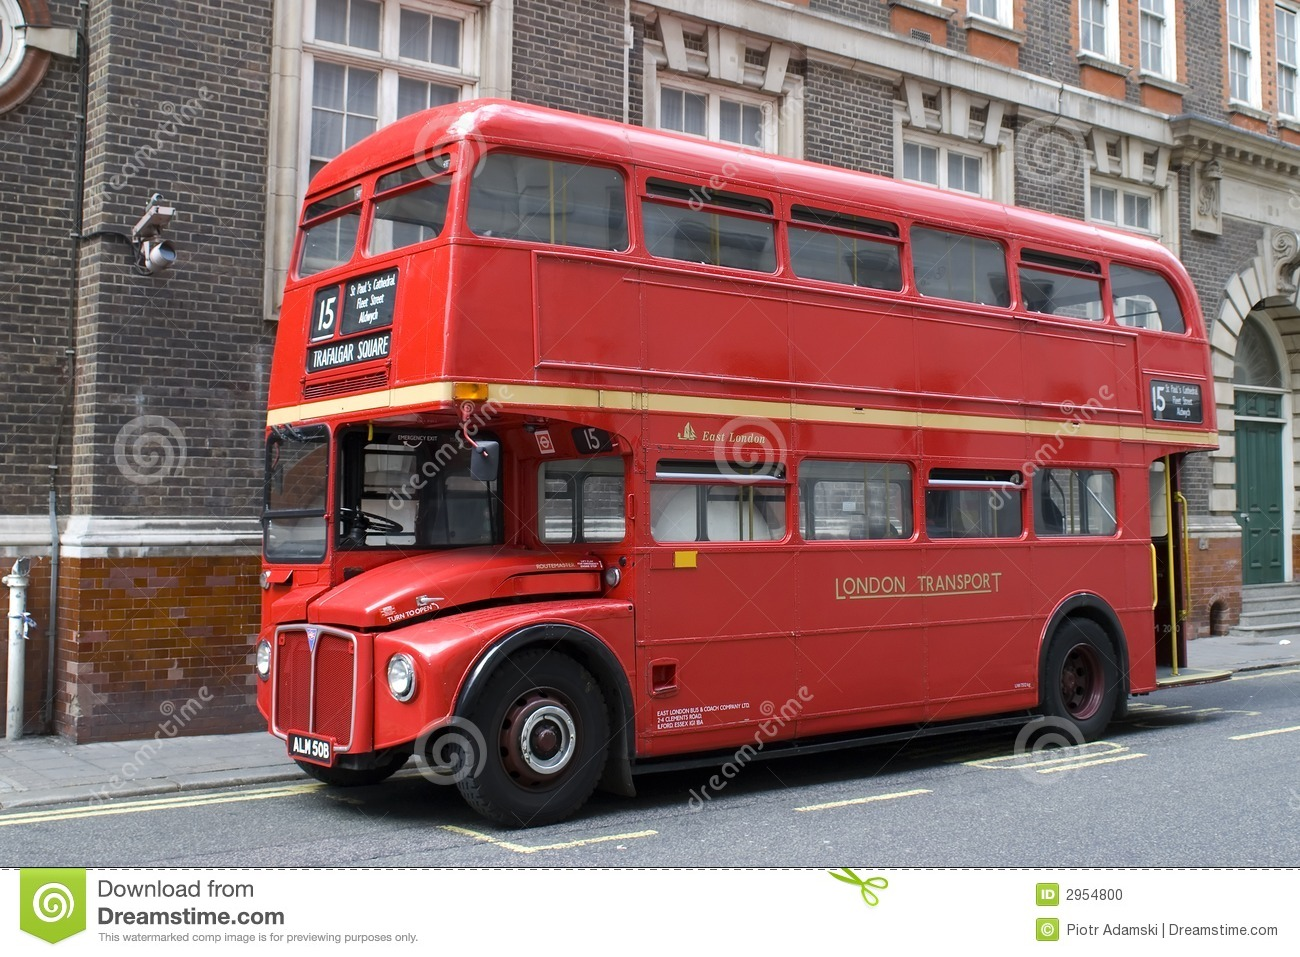 bus rouge de londres photo stock image du explosion panne 2954800. Black Bedroom Furniture Sets. Home Design Ideas